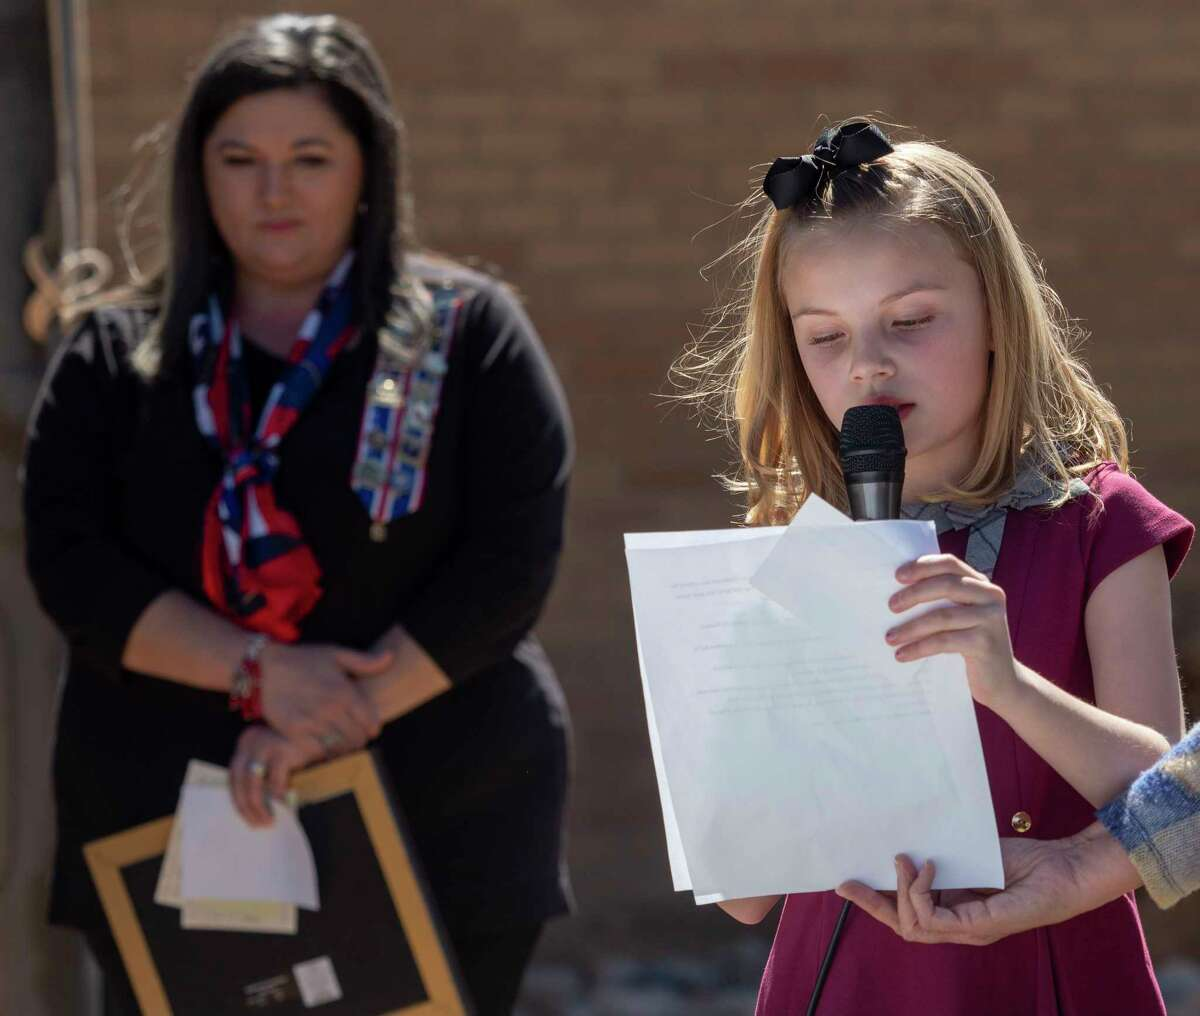 """Elizabeth Staley, fourth grader at Hillander School, reads her winning Texas history essay, """"Anson Jones. The Architect of Annexation"""" 03/02/2021, presented by Daughters of the Republic of Texas Aaron Estes Chapter, outside the Haley Library during the Texas Independence celebration. Tim Fischer/Reporter-Telegram"""